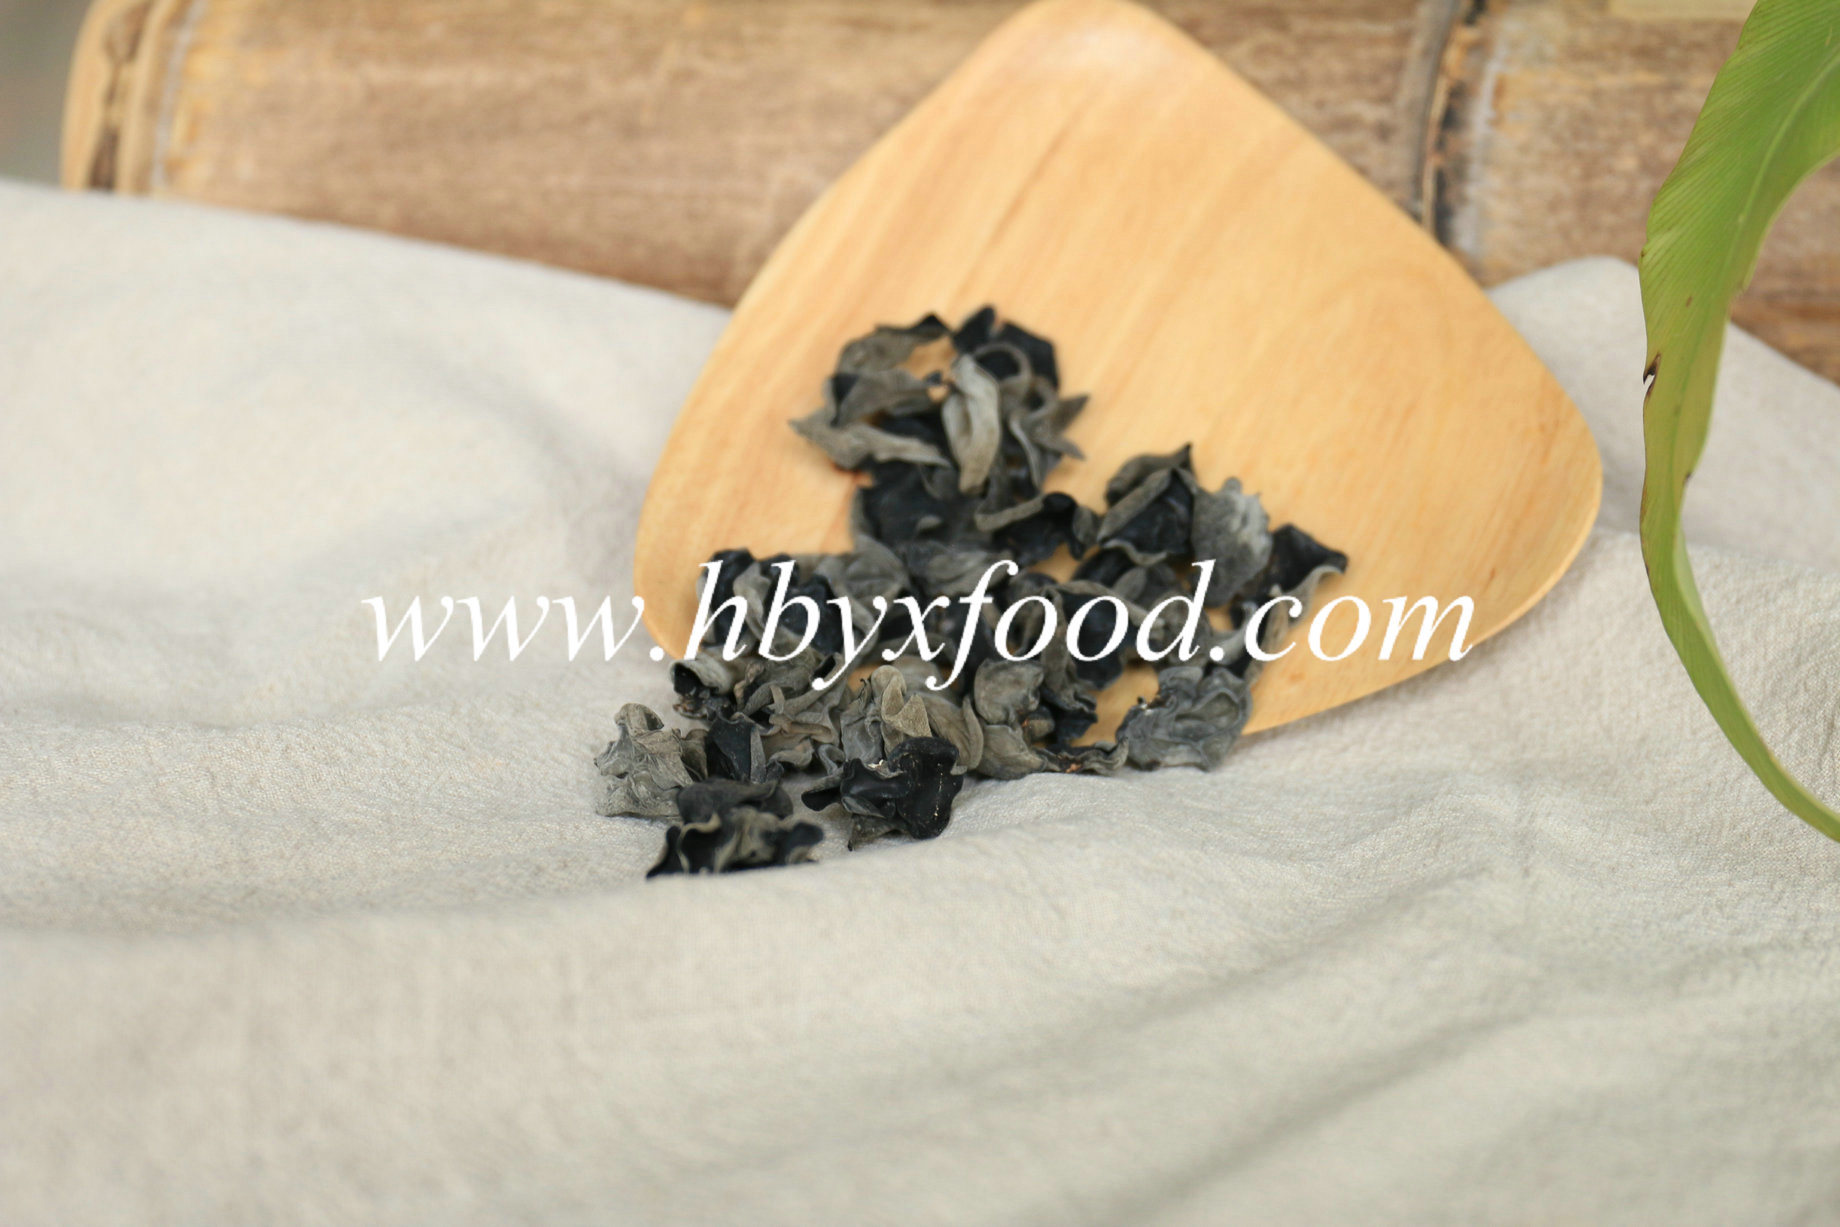 Factory Price Dried Black Fungus Easy to Store and Healthy Vegetable